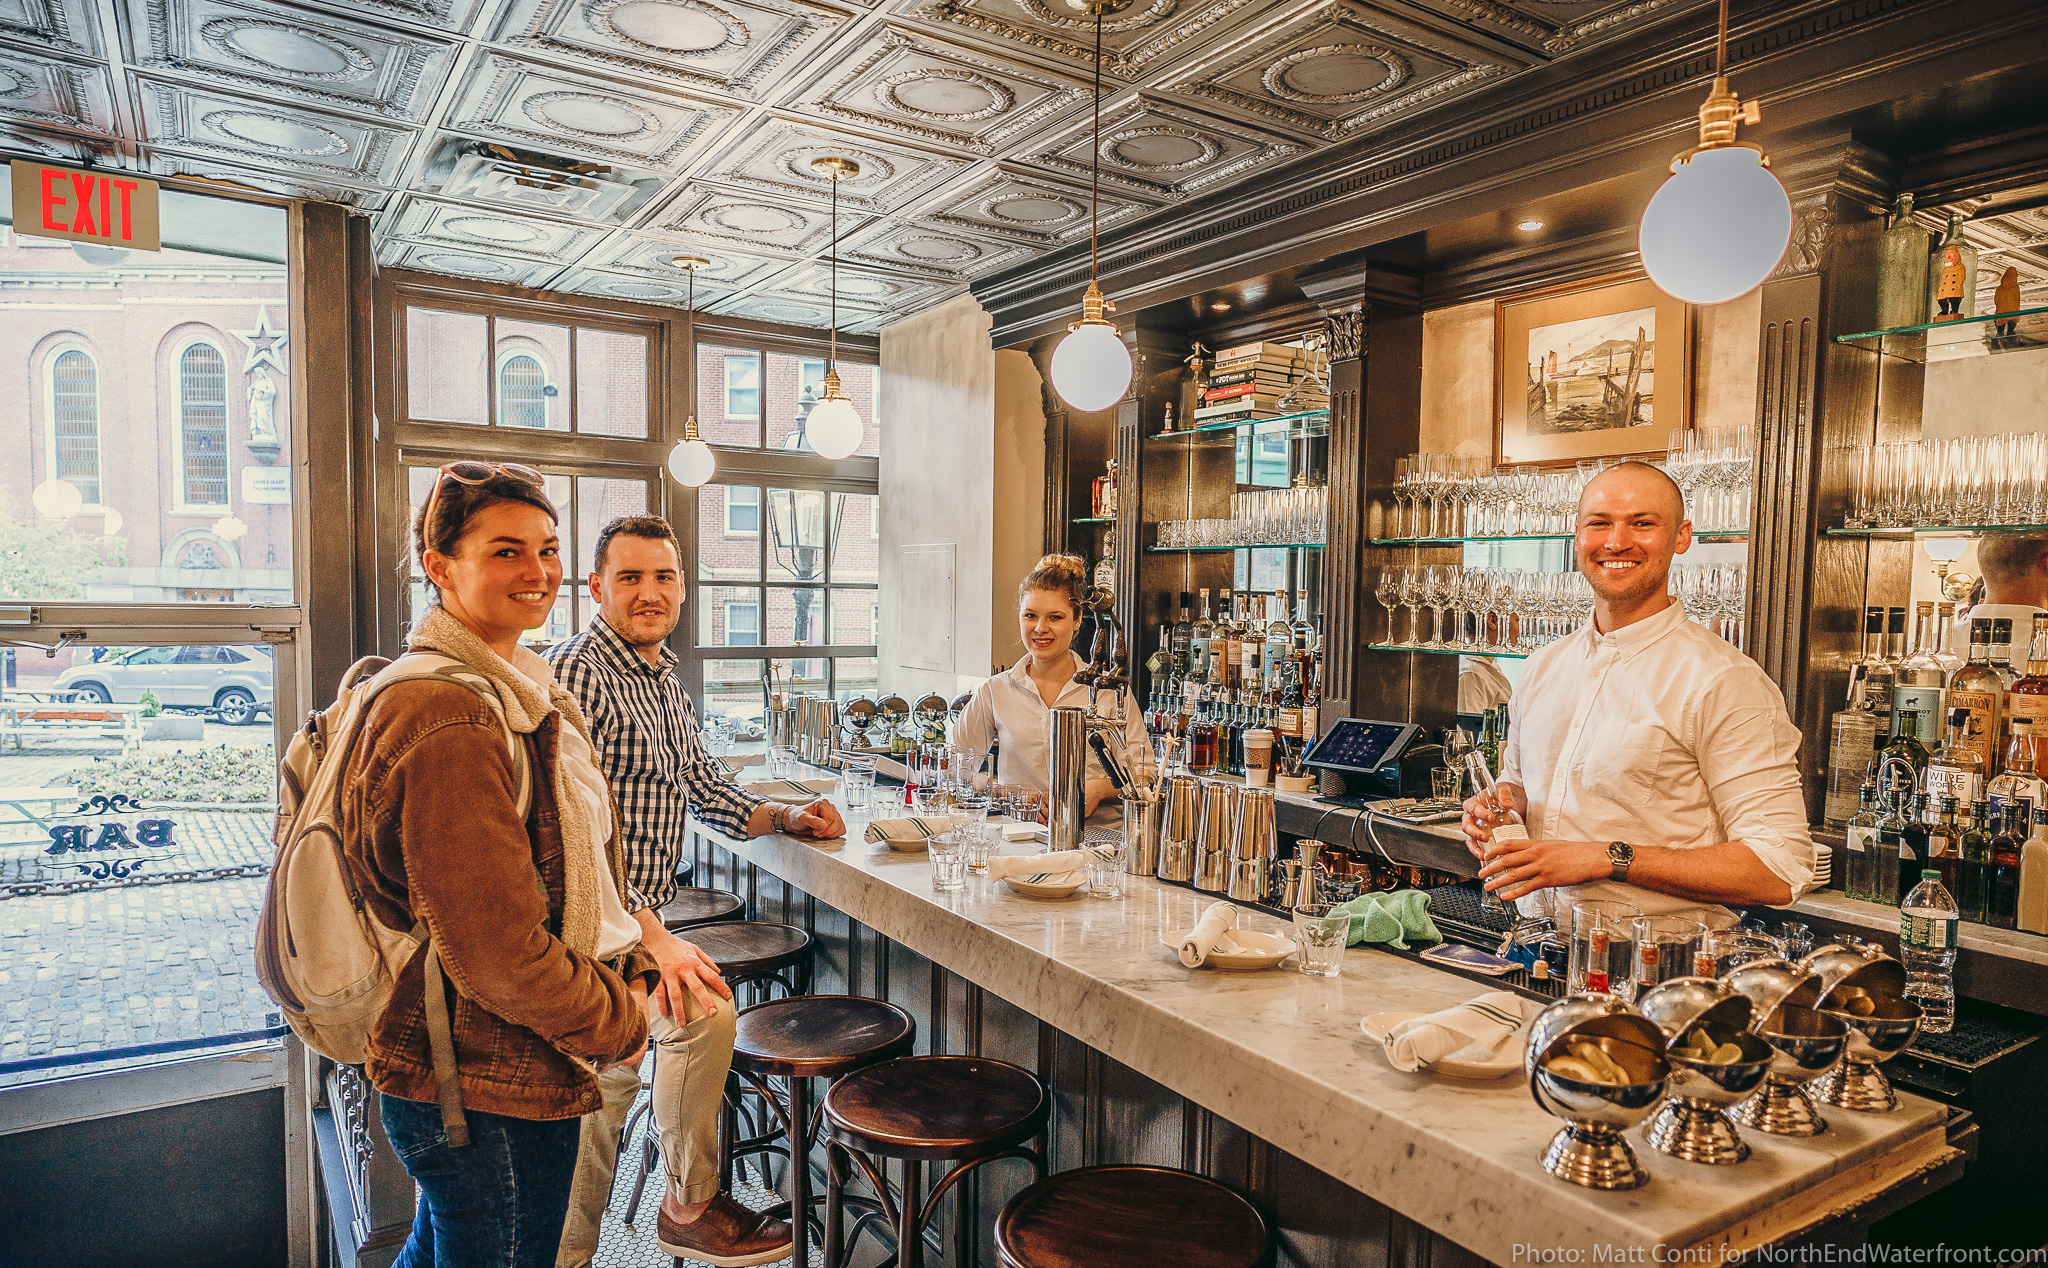 North Square Oyster Opens in Boston's Oldest Public Square - NorthEndWaterfront.com